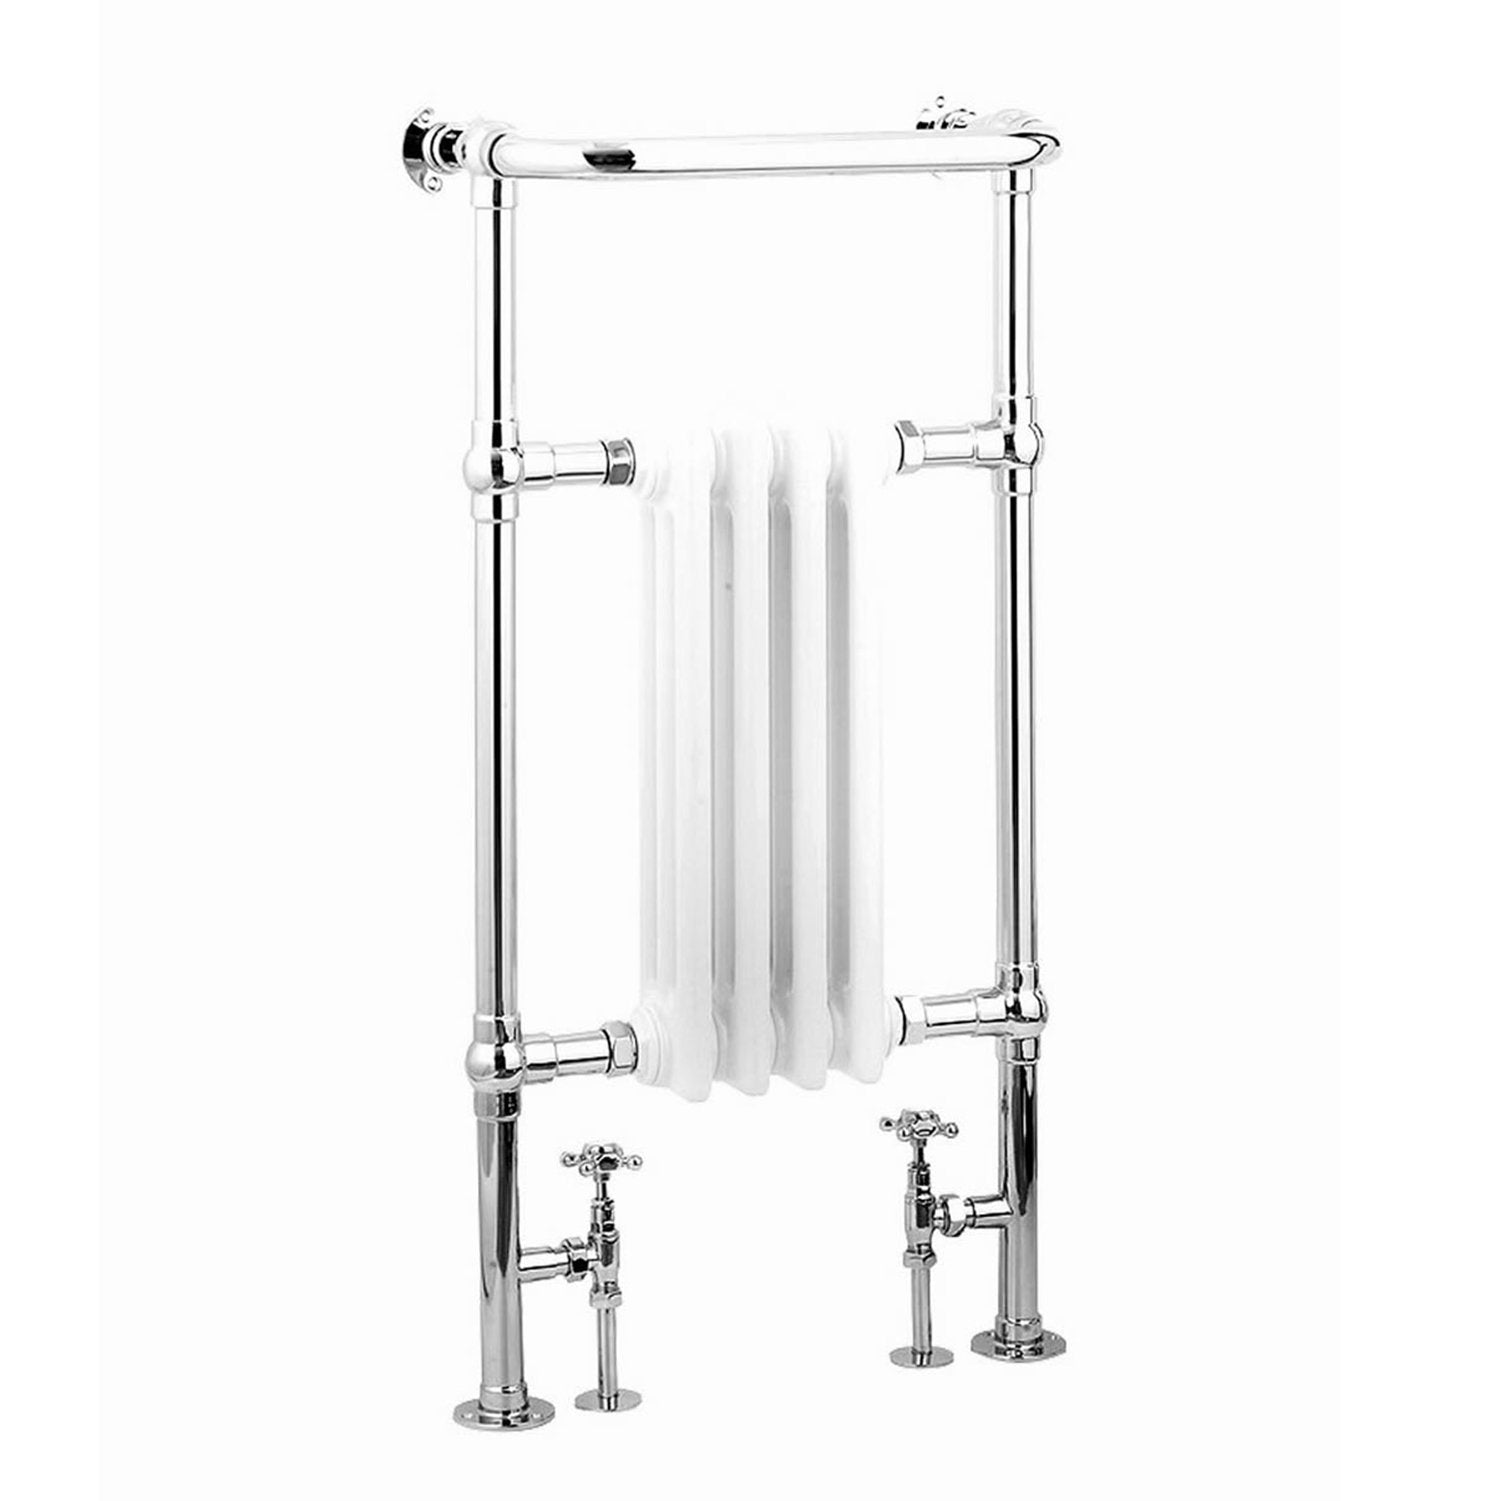 Reina Designer Alicia Traditional Heated Towel Rail Radiator